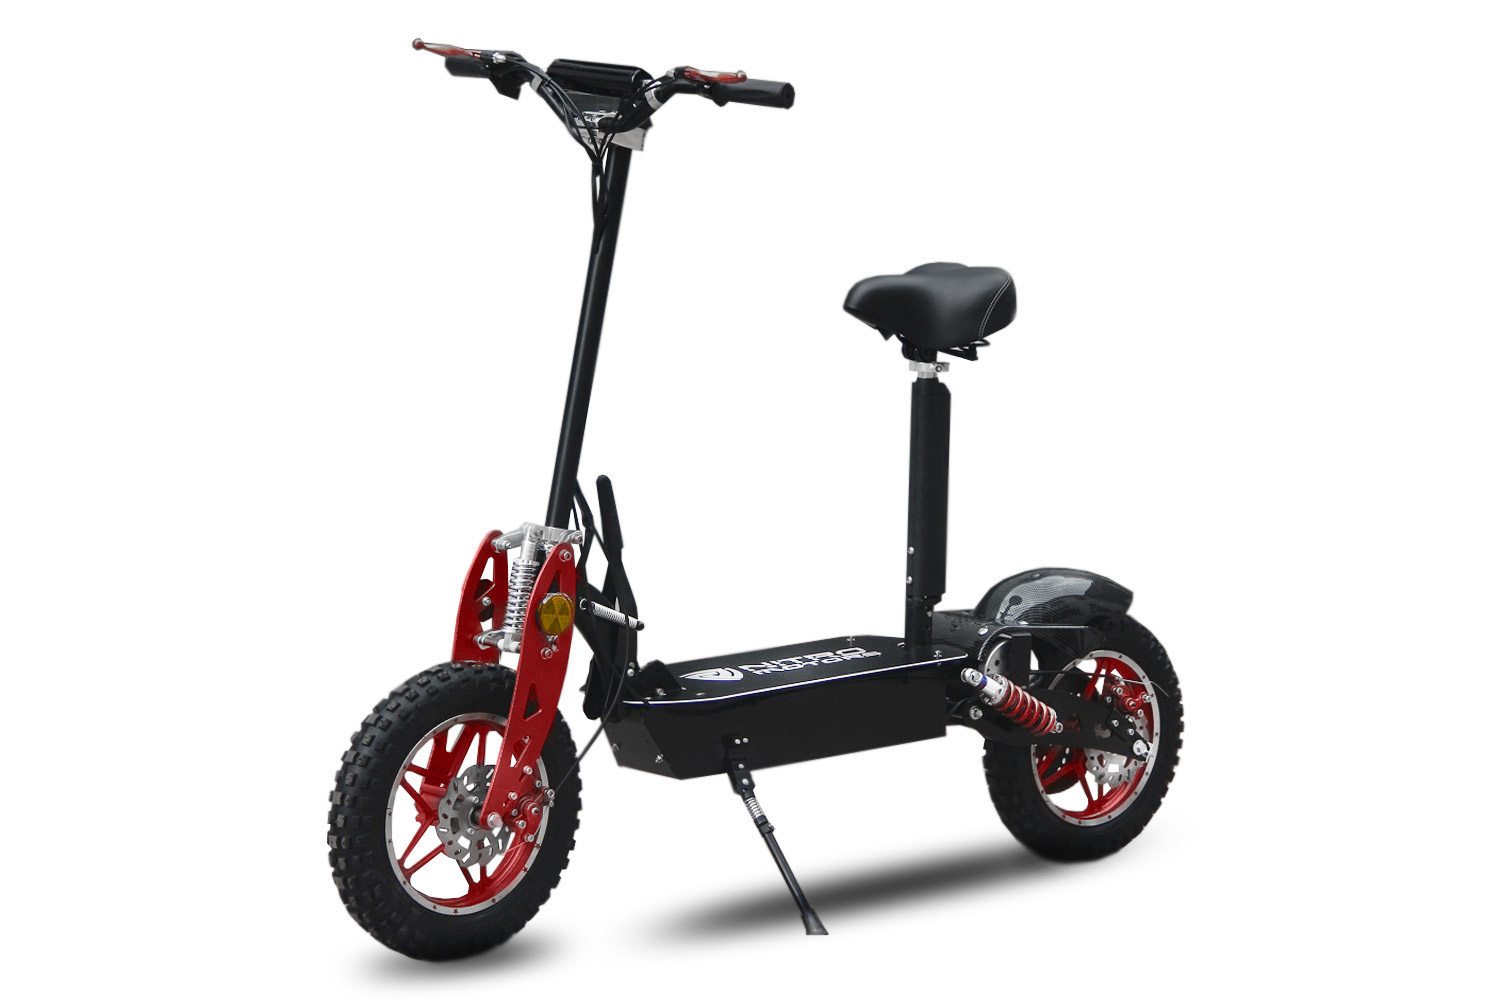 nitro motor elektro scooter 10 zoll reifen 48 volt 1000. Black Bedroom Furniture Sets. Home Design Ideas